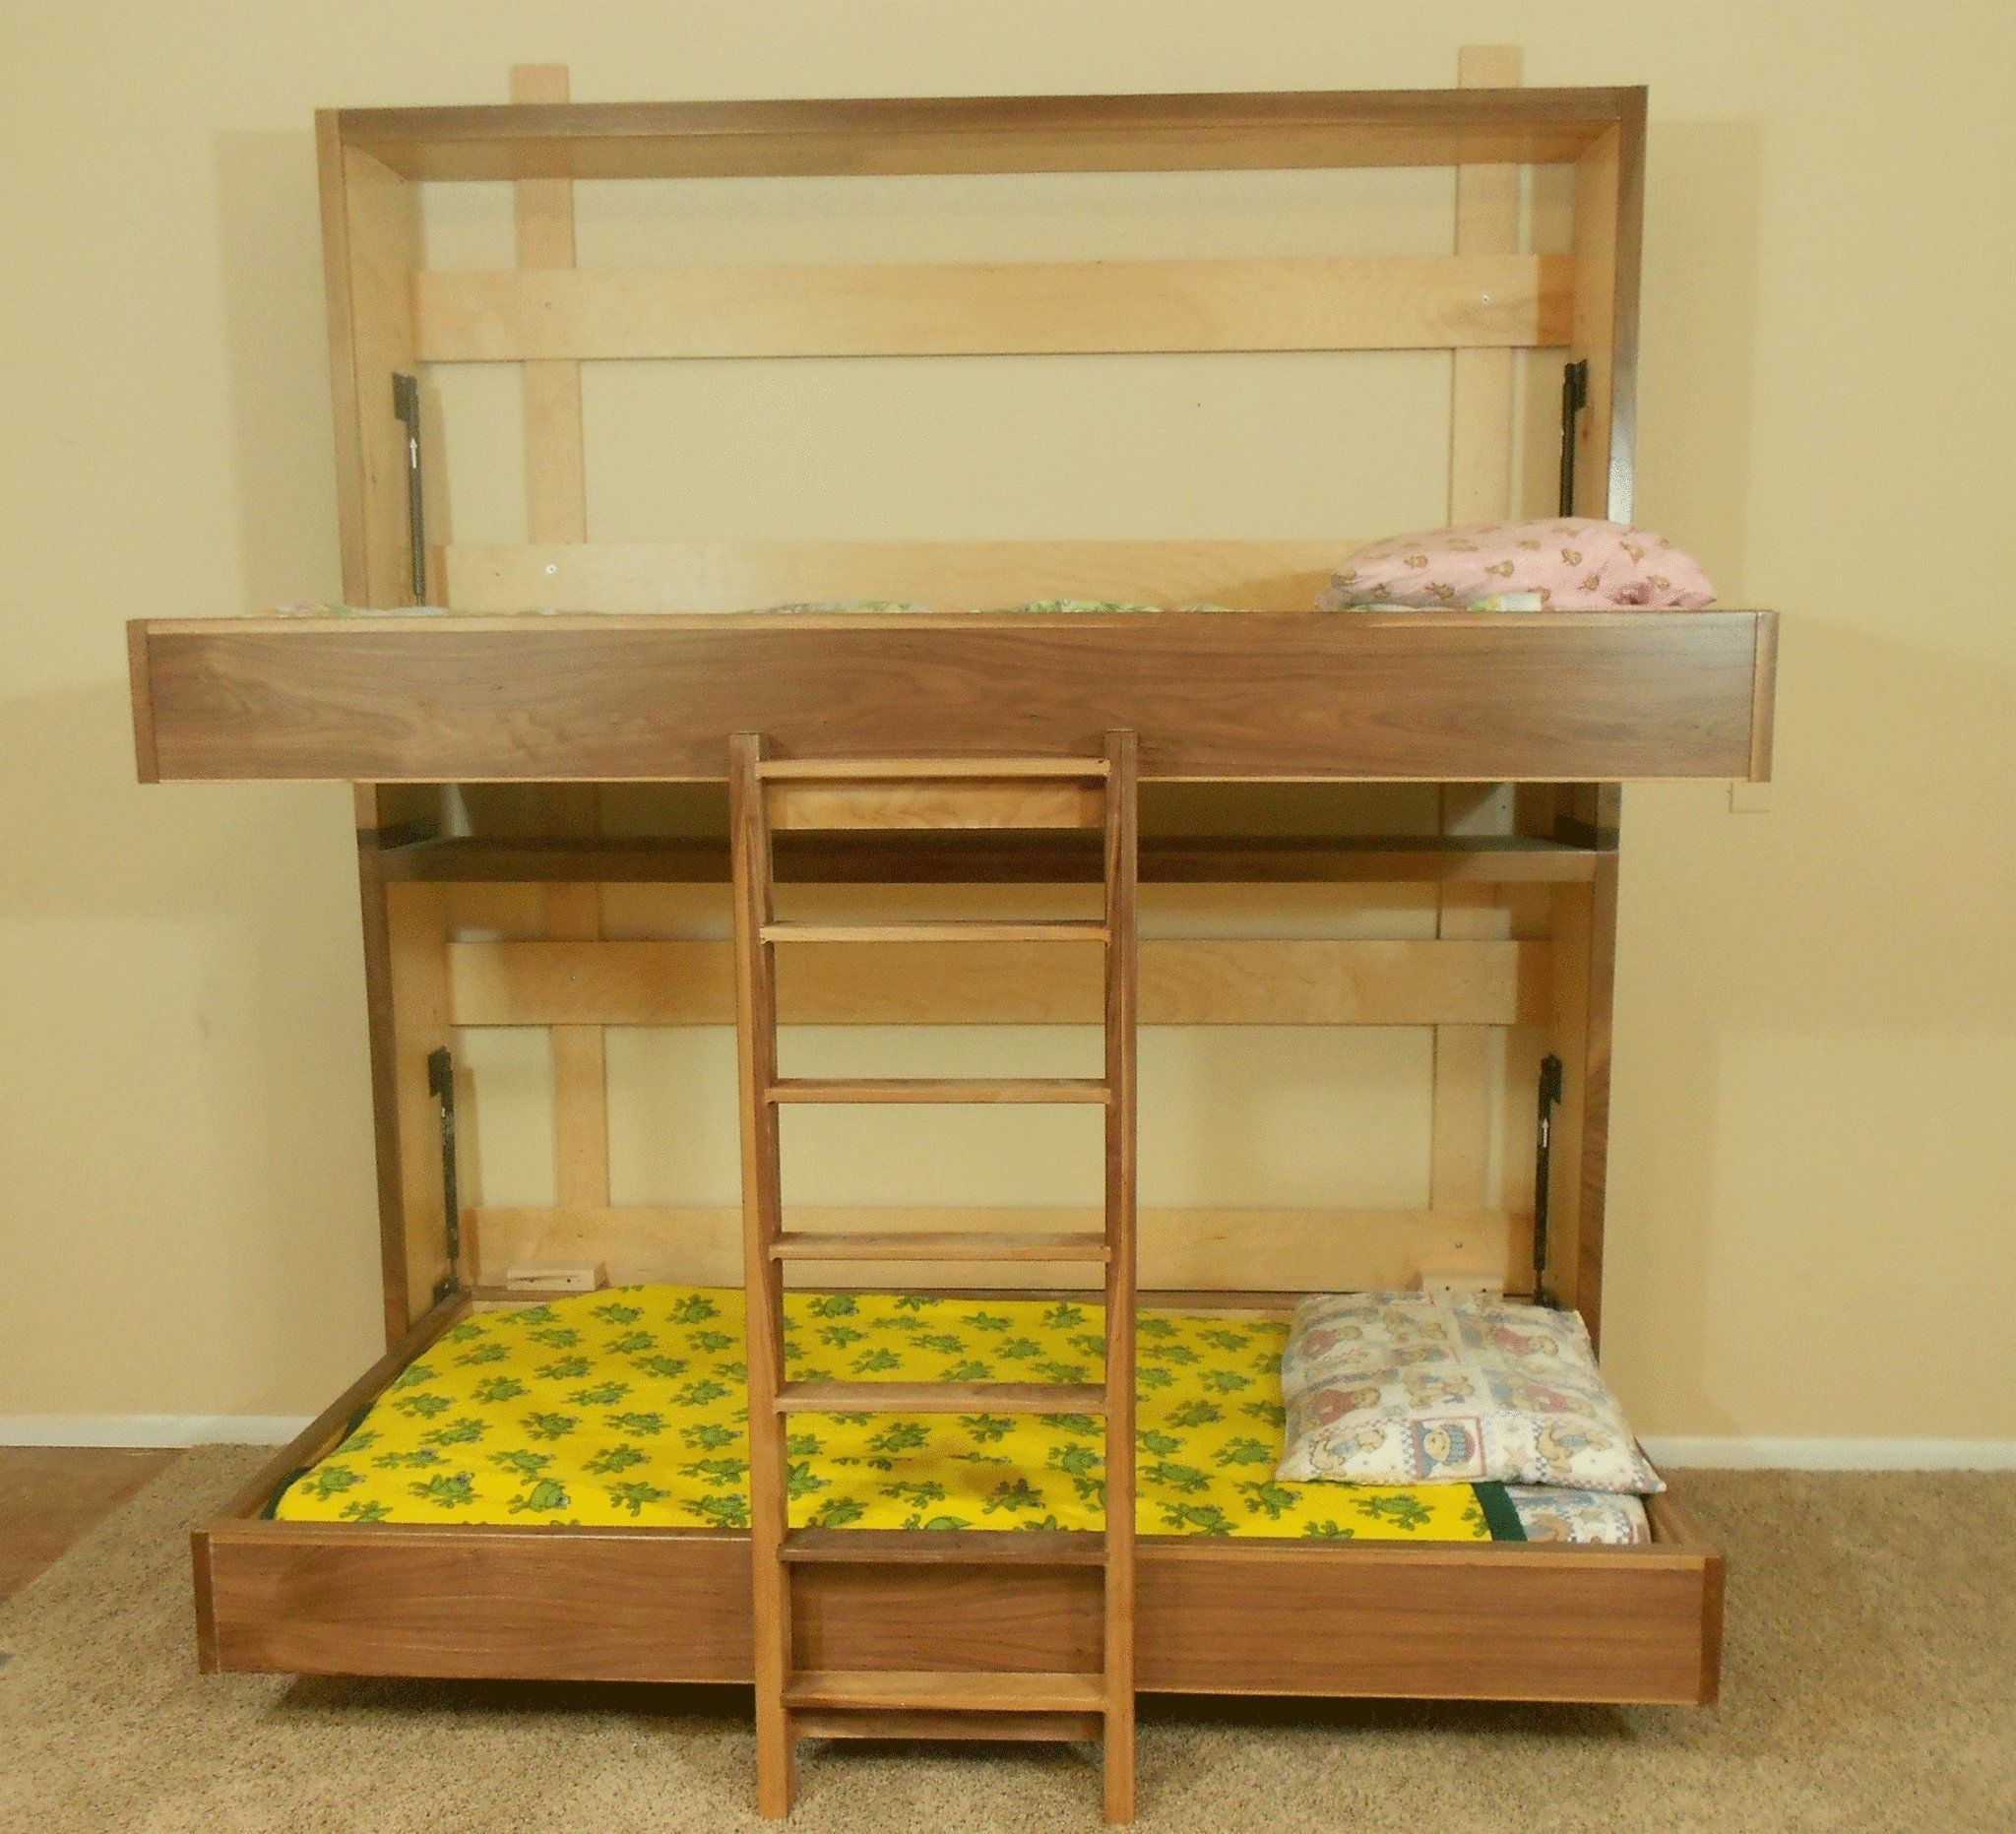 Image Of Murphy Bunk Beds Diy Bunkbeds Design Ideas How To Make Twin Over Throughout Bed Plans Before Build